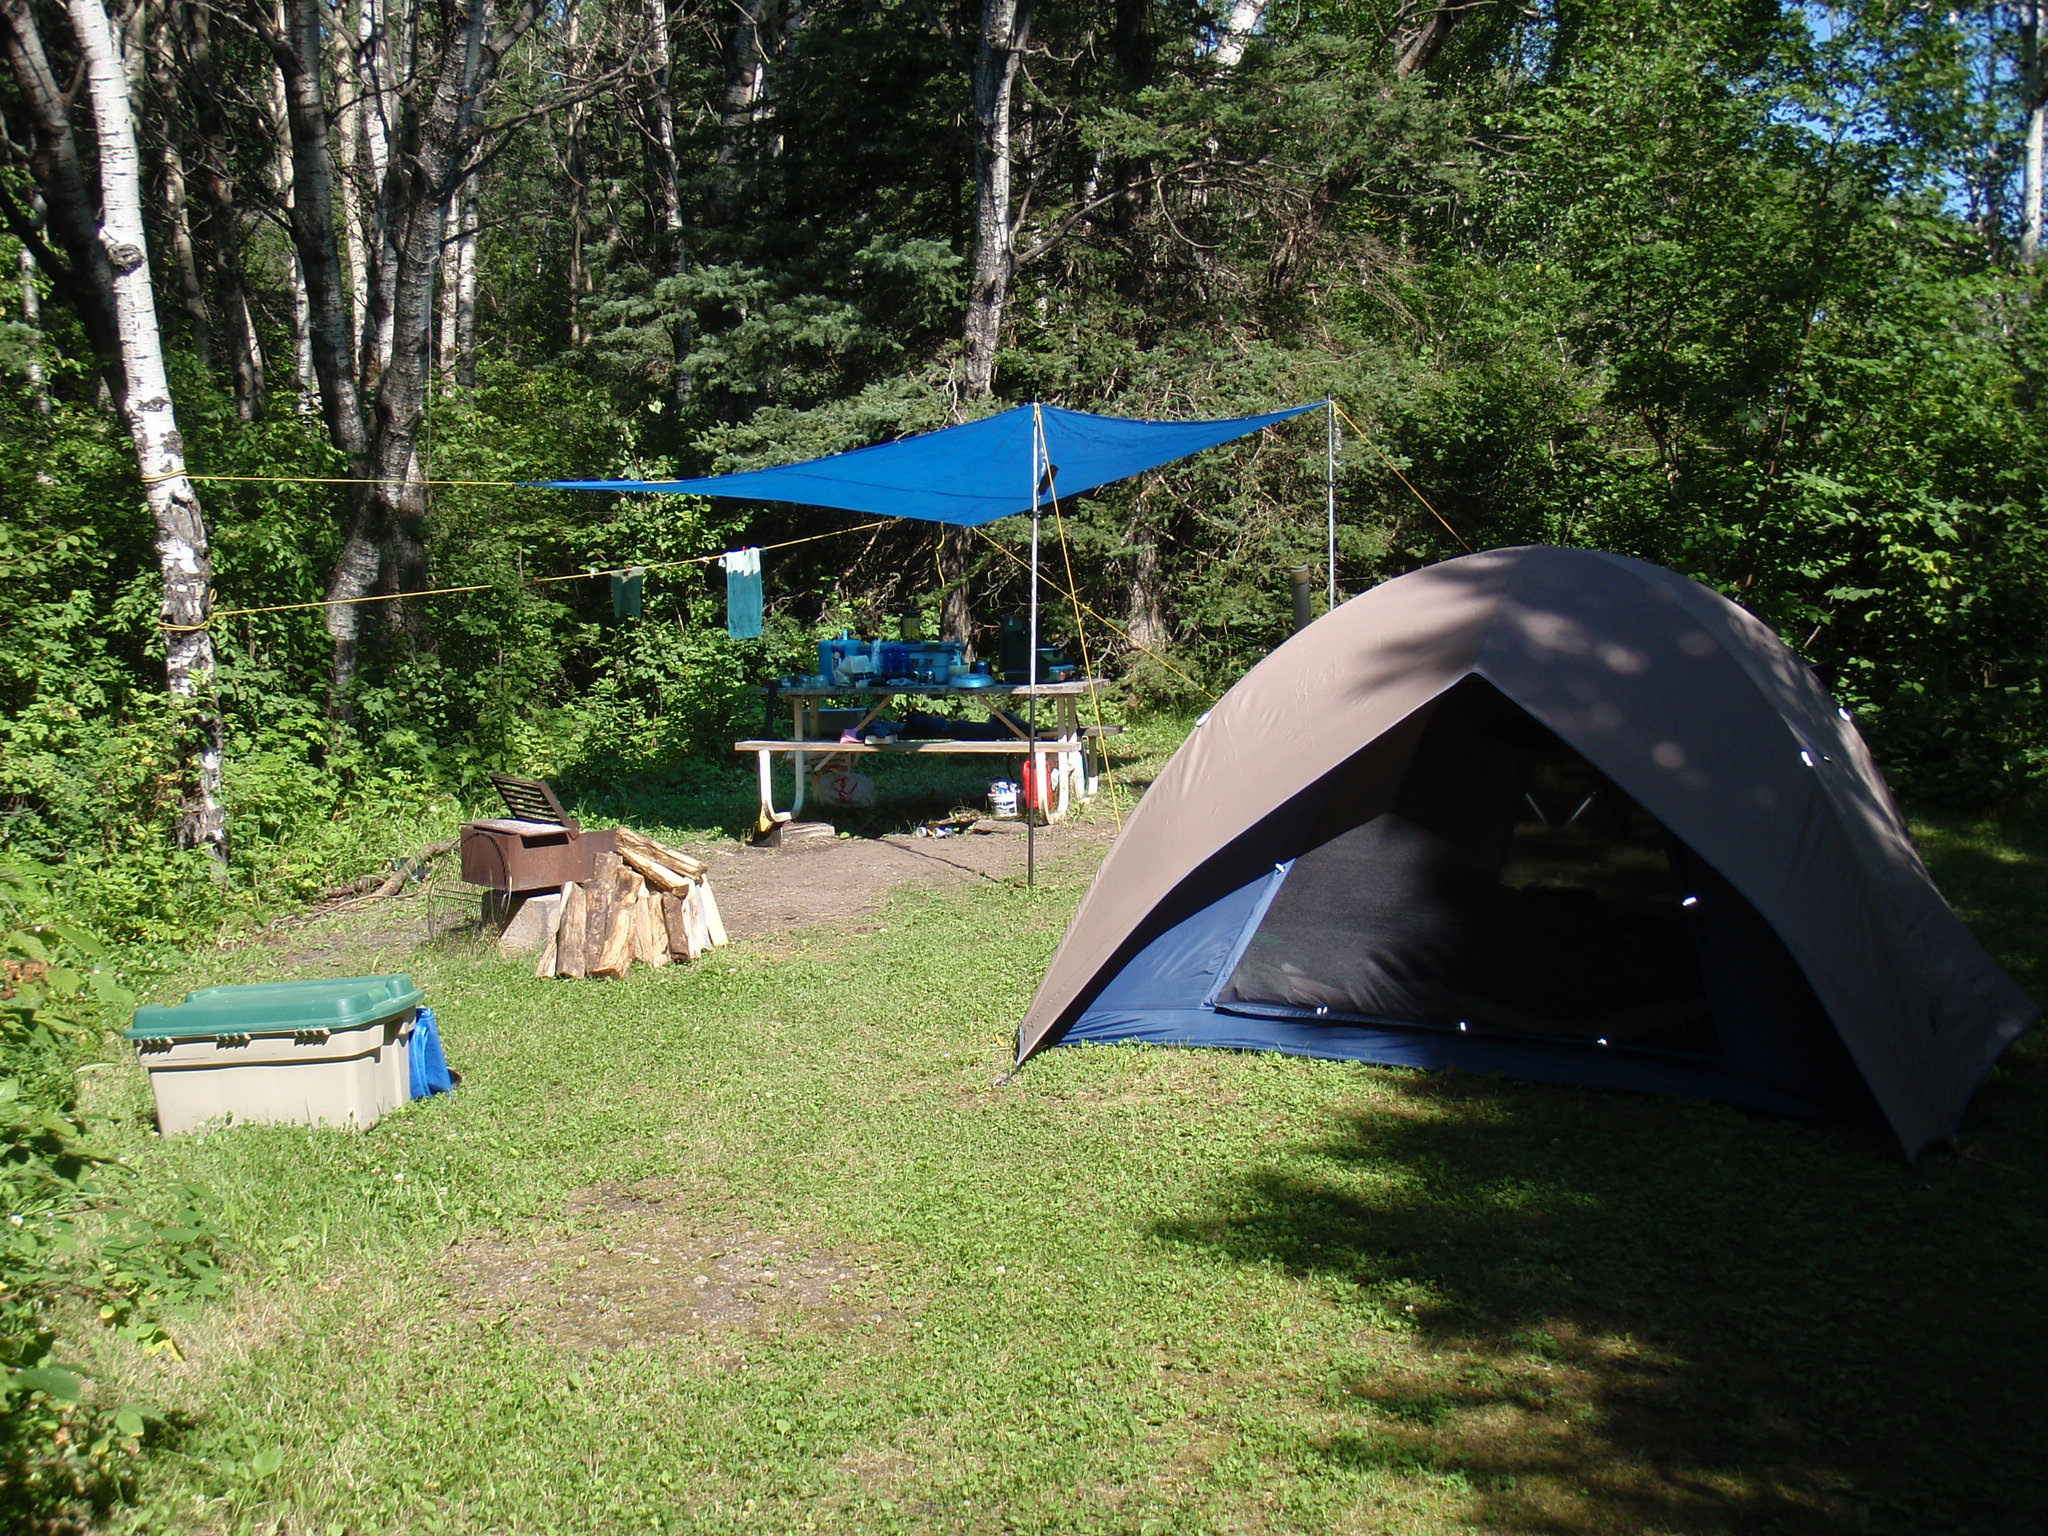 Camping Sites In Middle Of River In Island